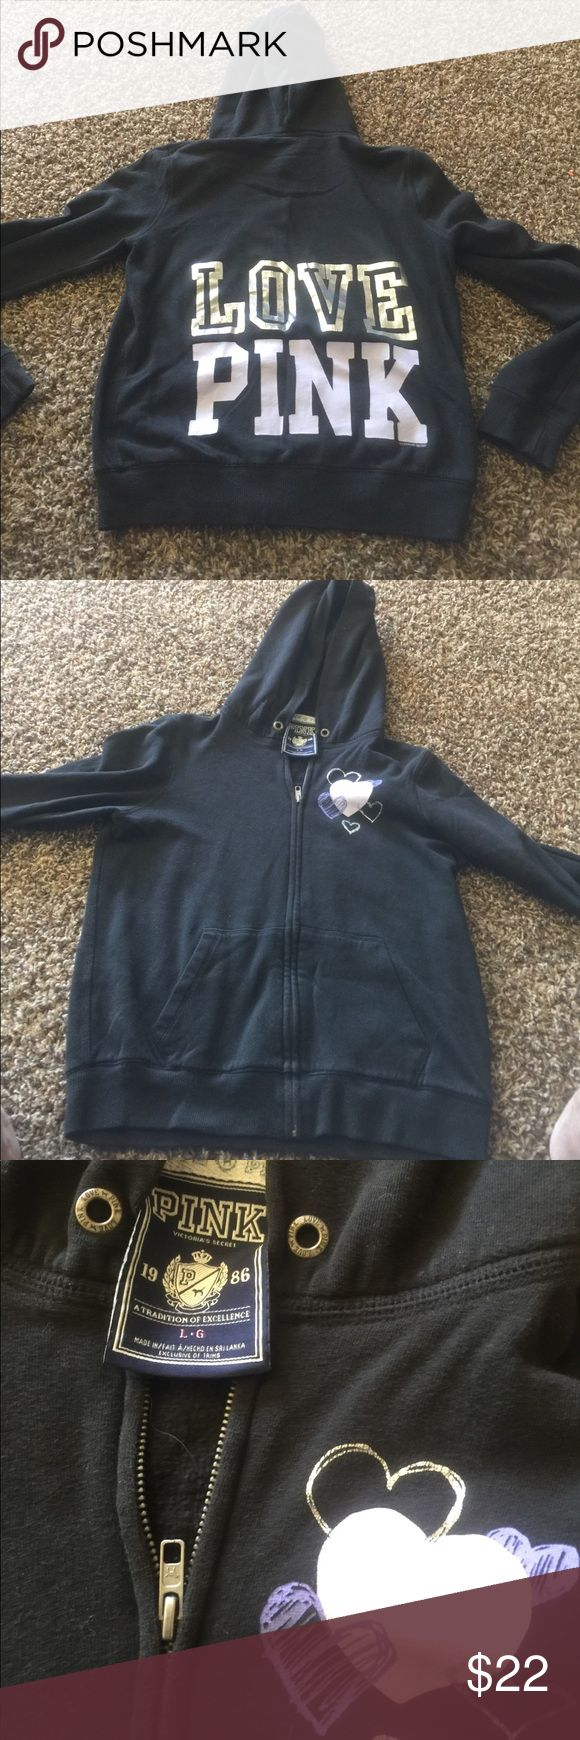 Pink zip up sweatshirt large Used but good condition.  Missing strings as soon in picture.  Purple Hearts on the front left upper side Love Pink on the back. PINK Victoria's Secret Tops Sweatshirts & Hoodies